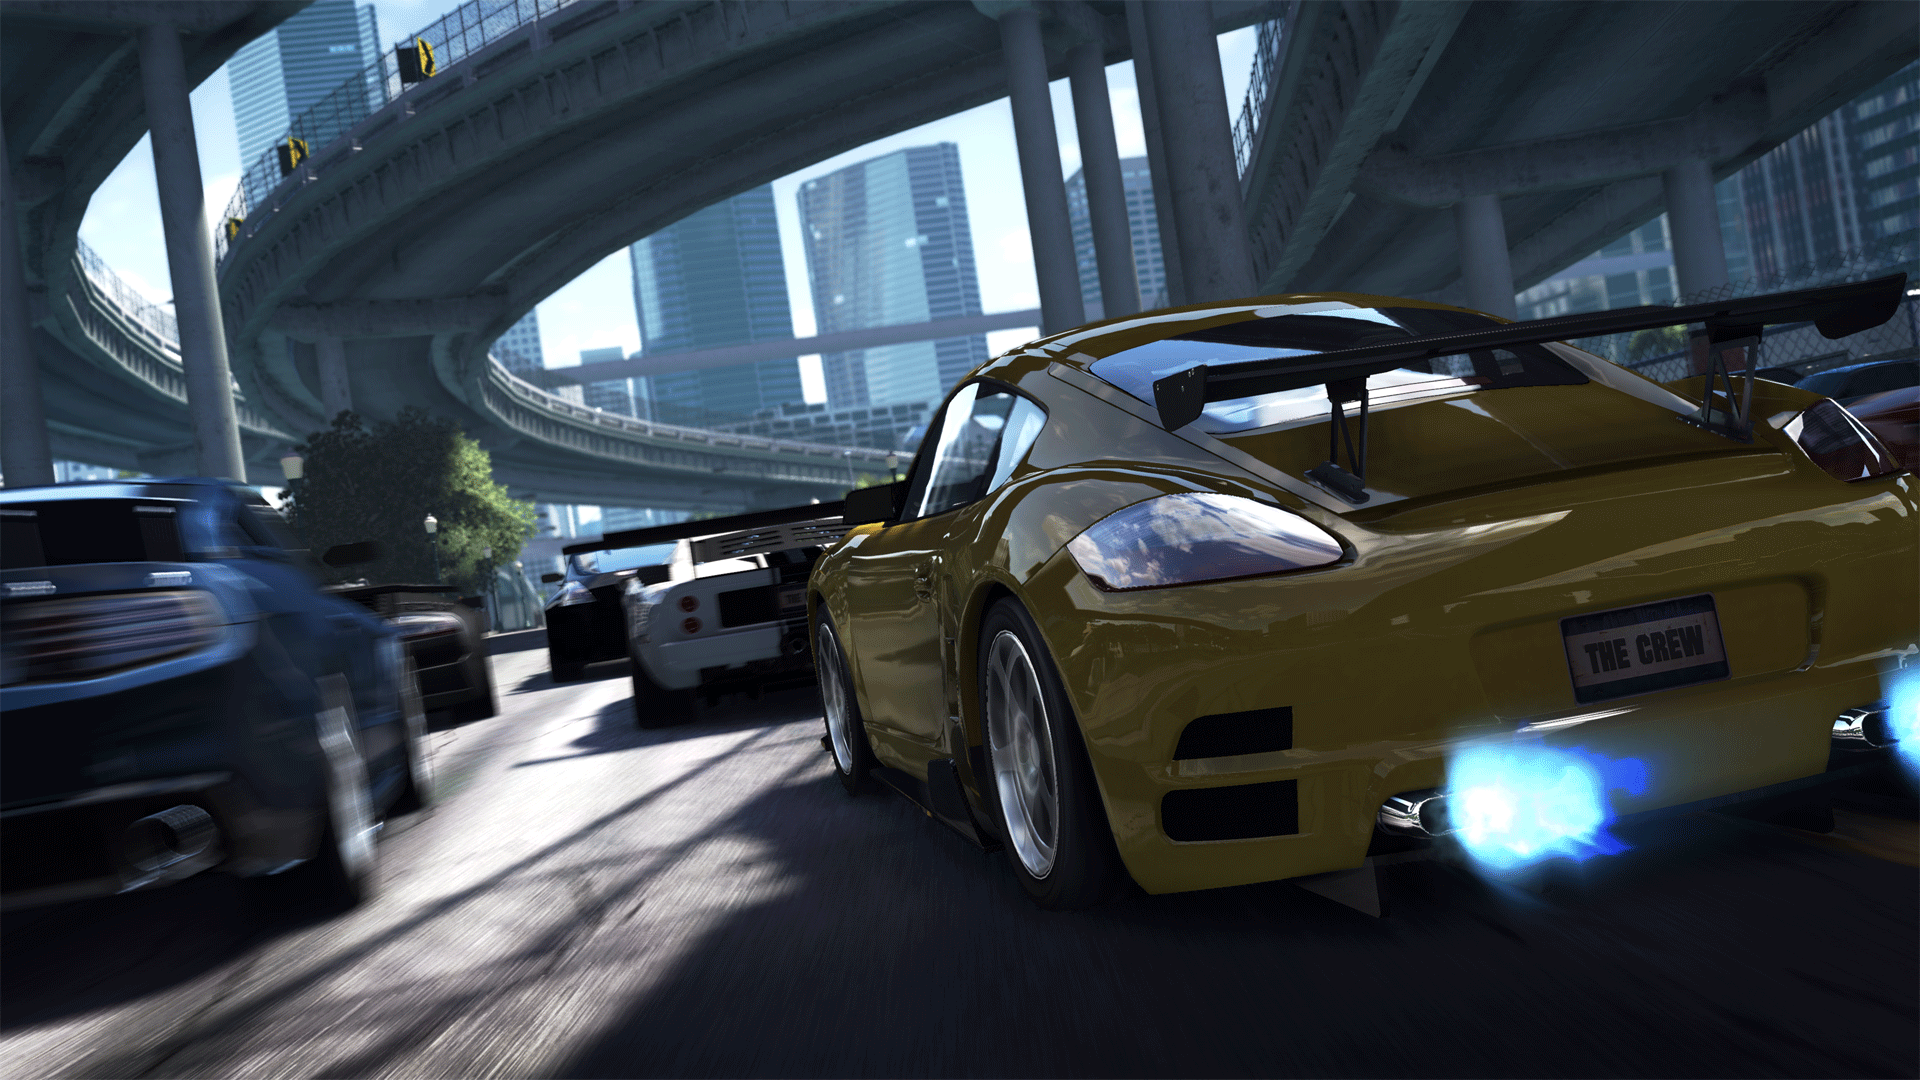 The Crew officially unveiled as Ubisoft's new next-gen open world IP